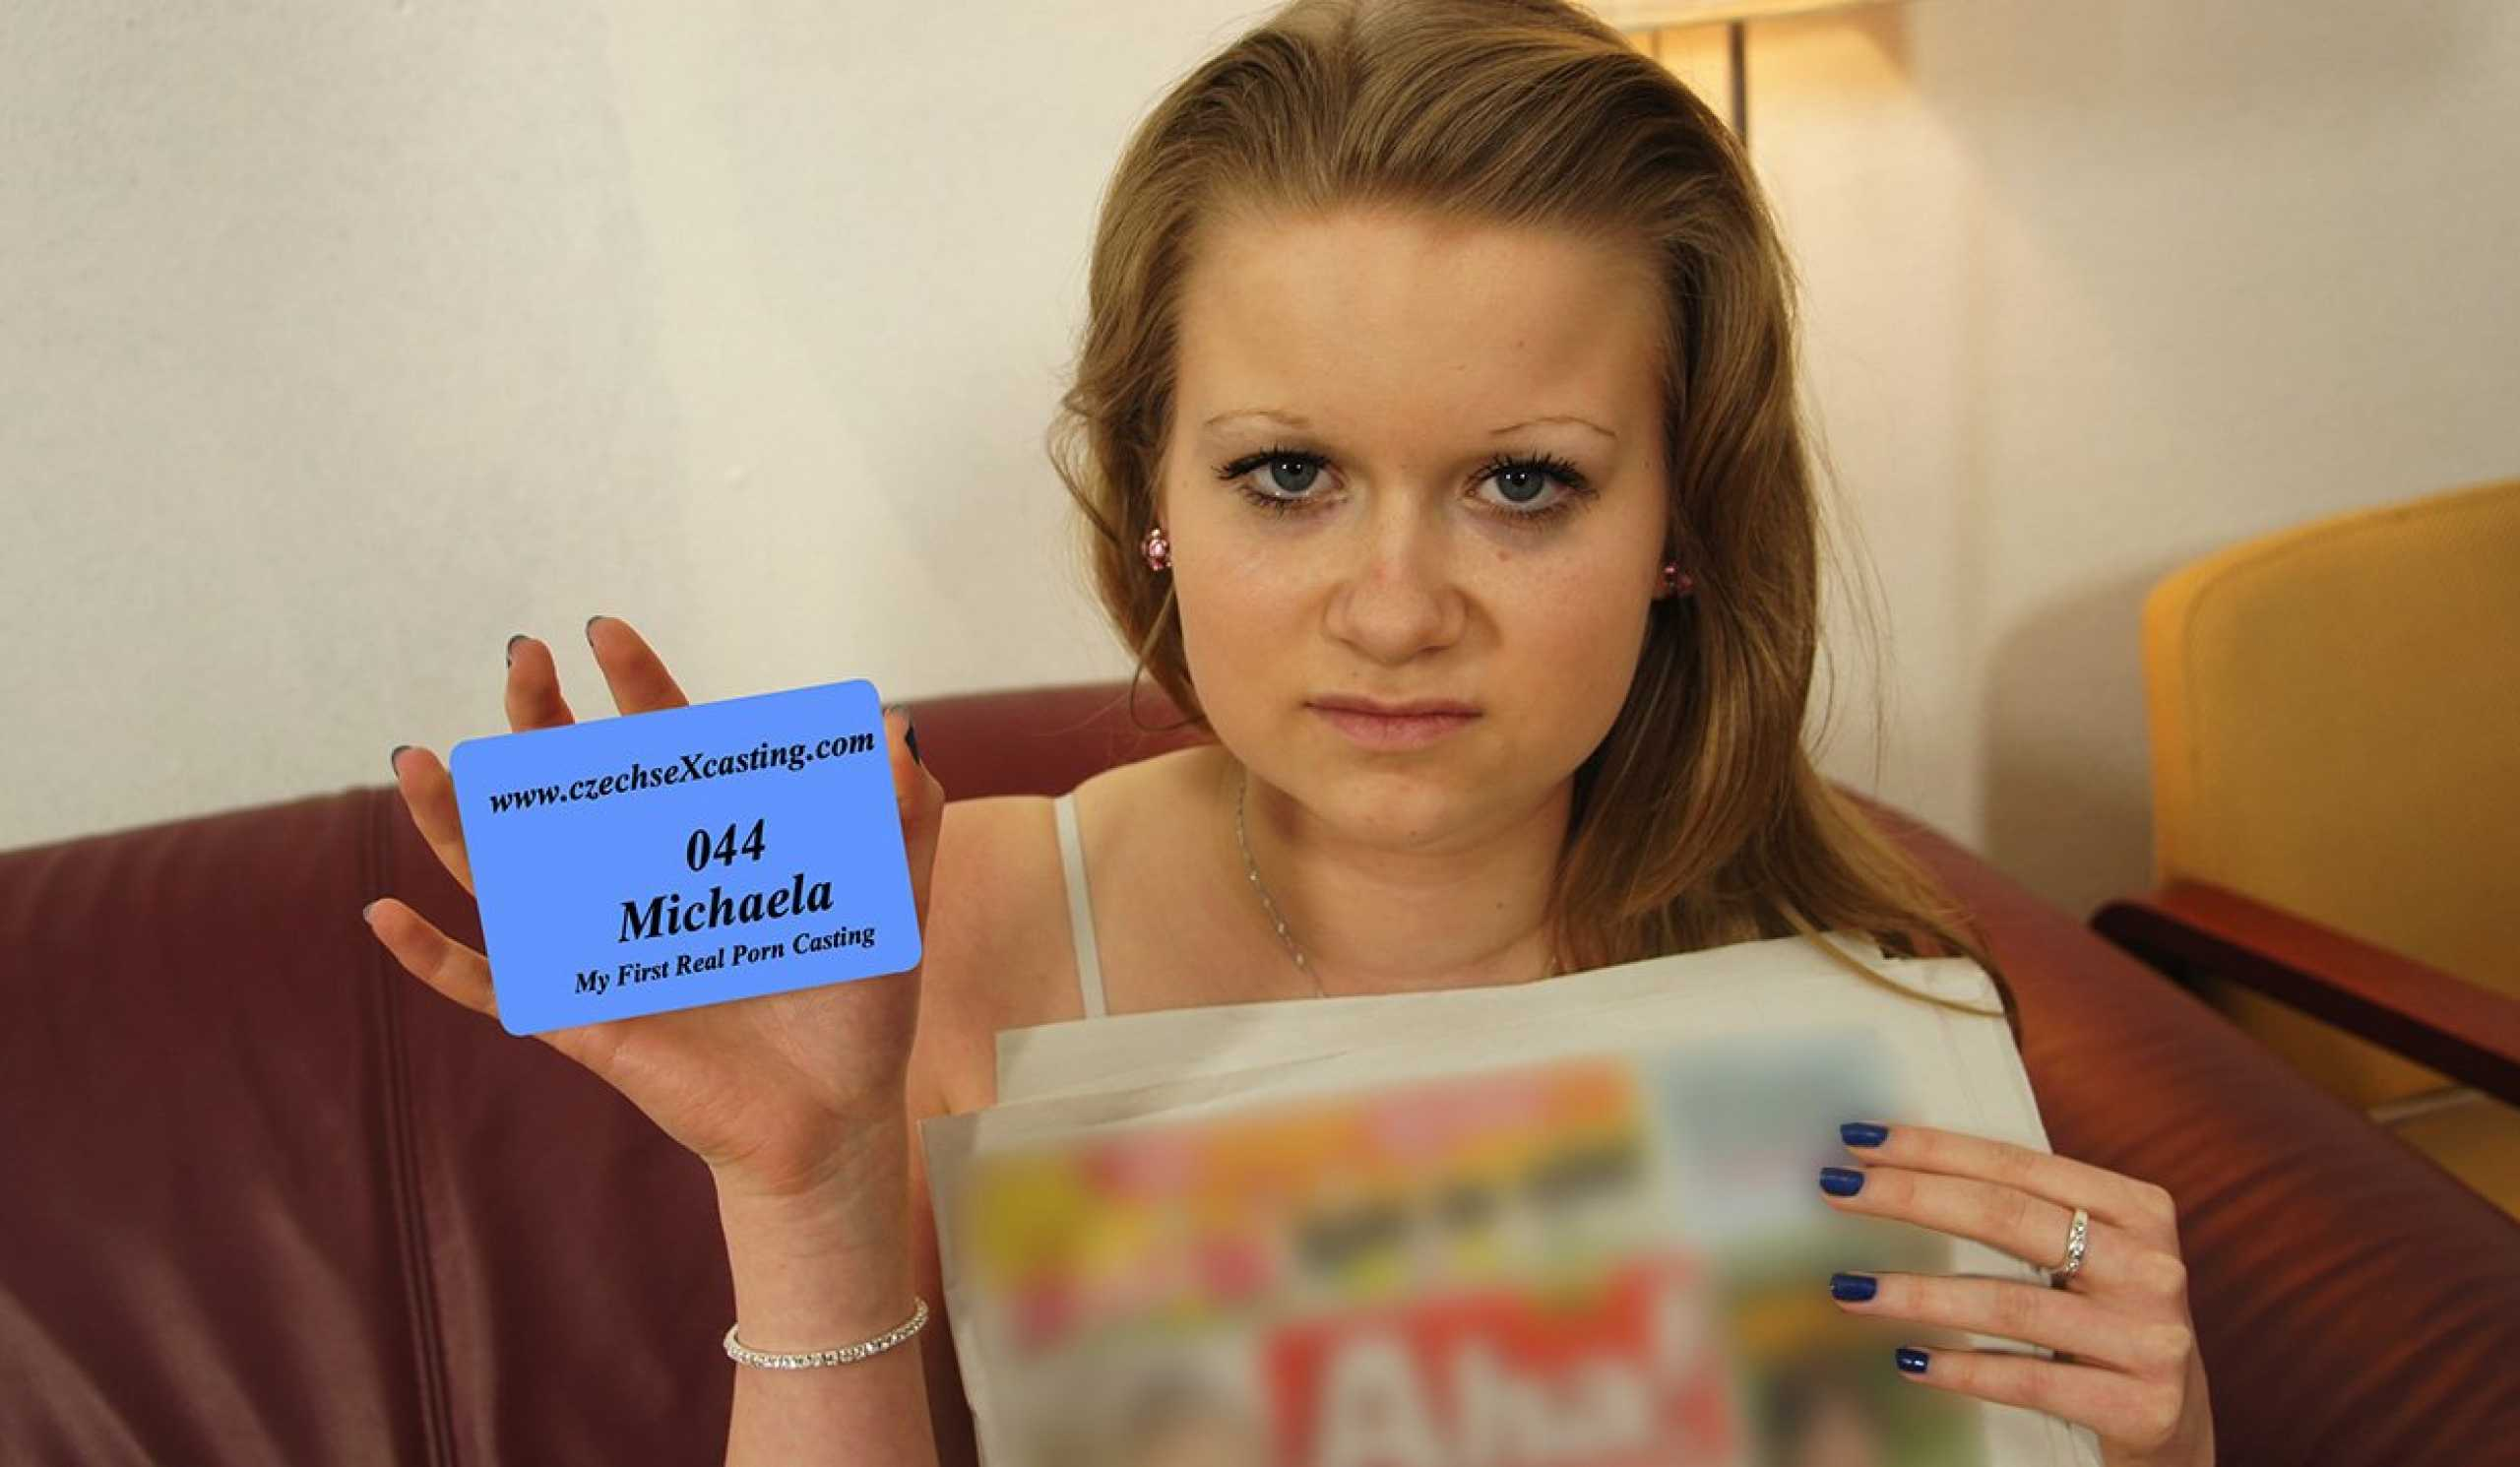 Michaela's first porn casting